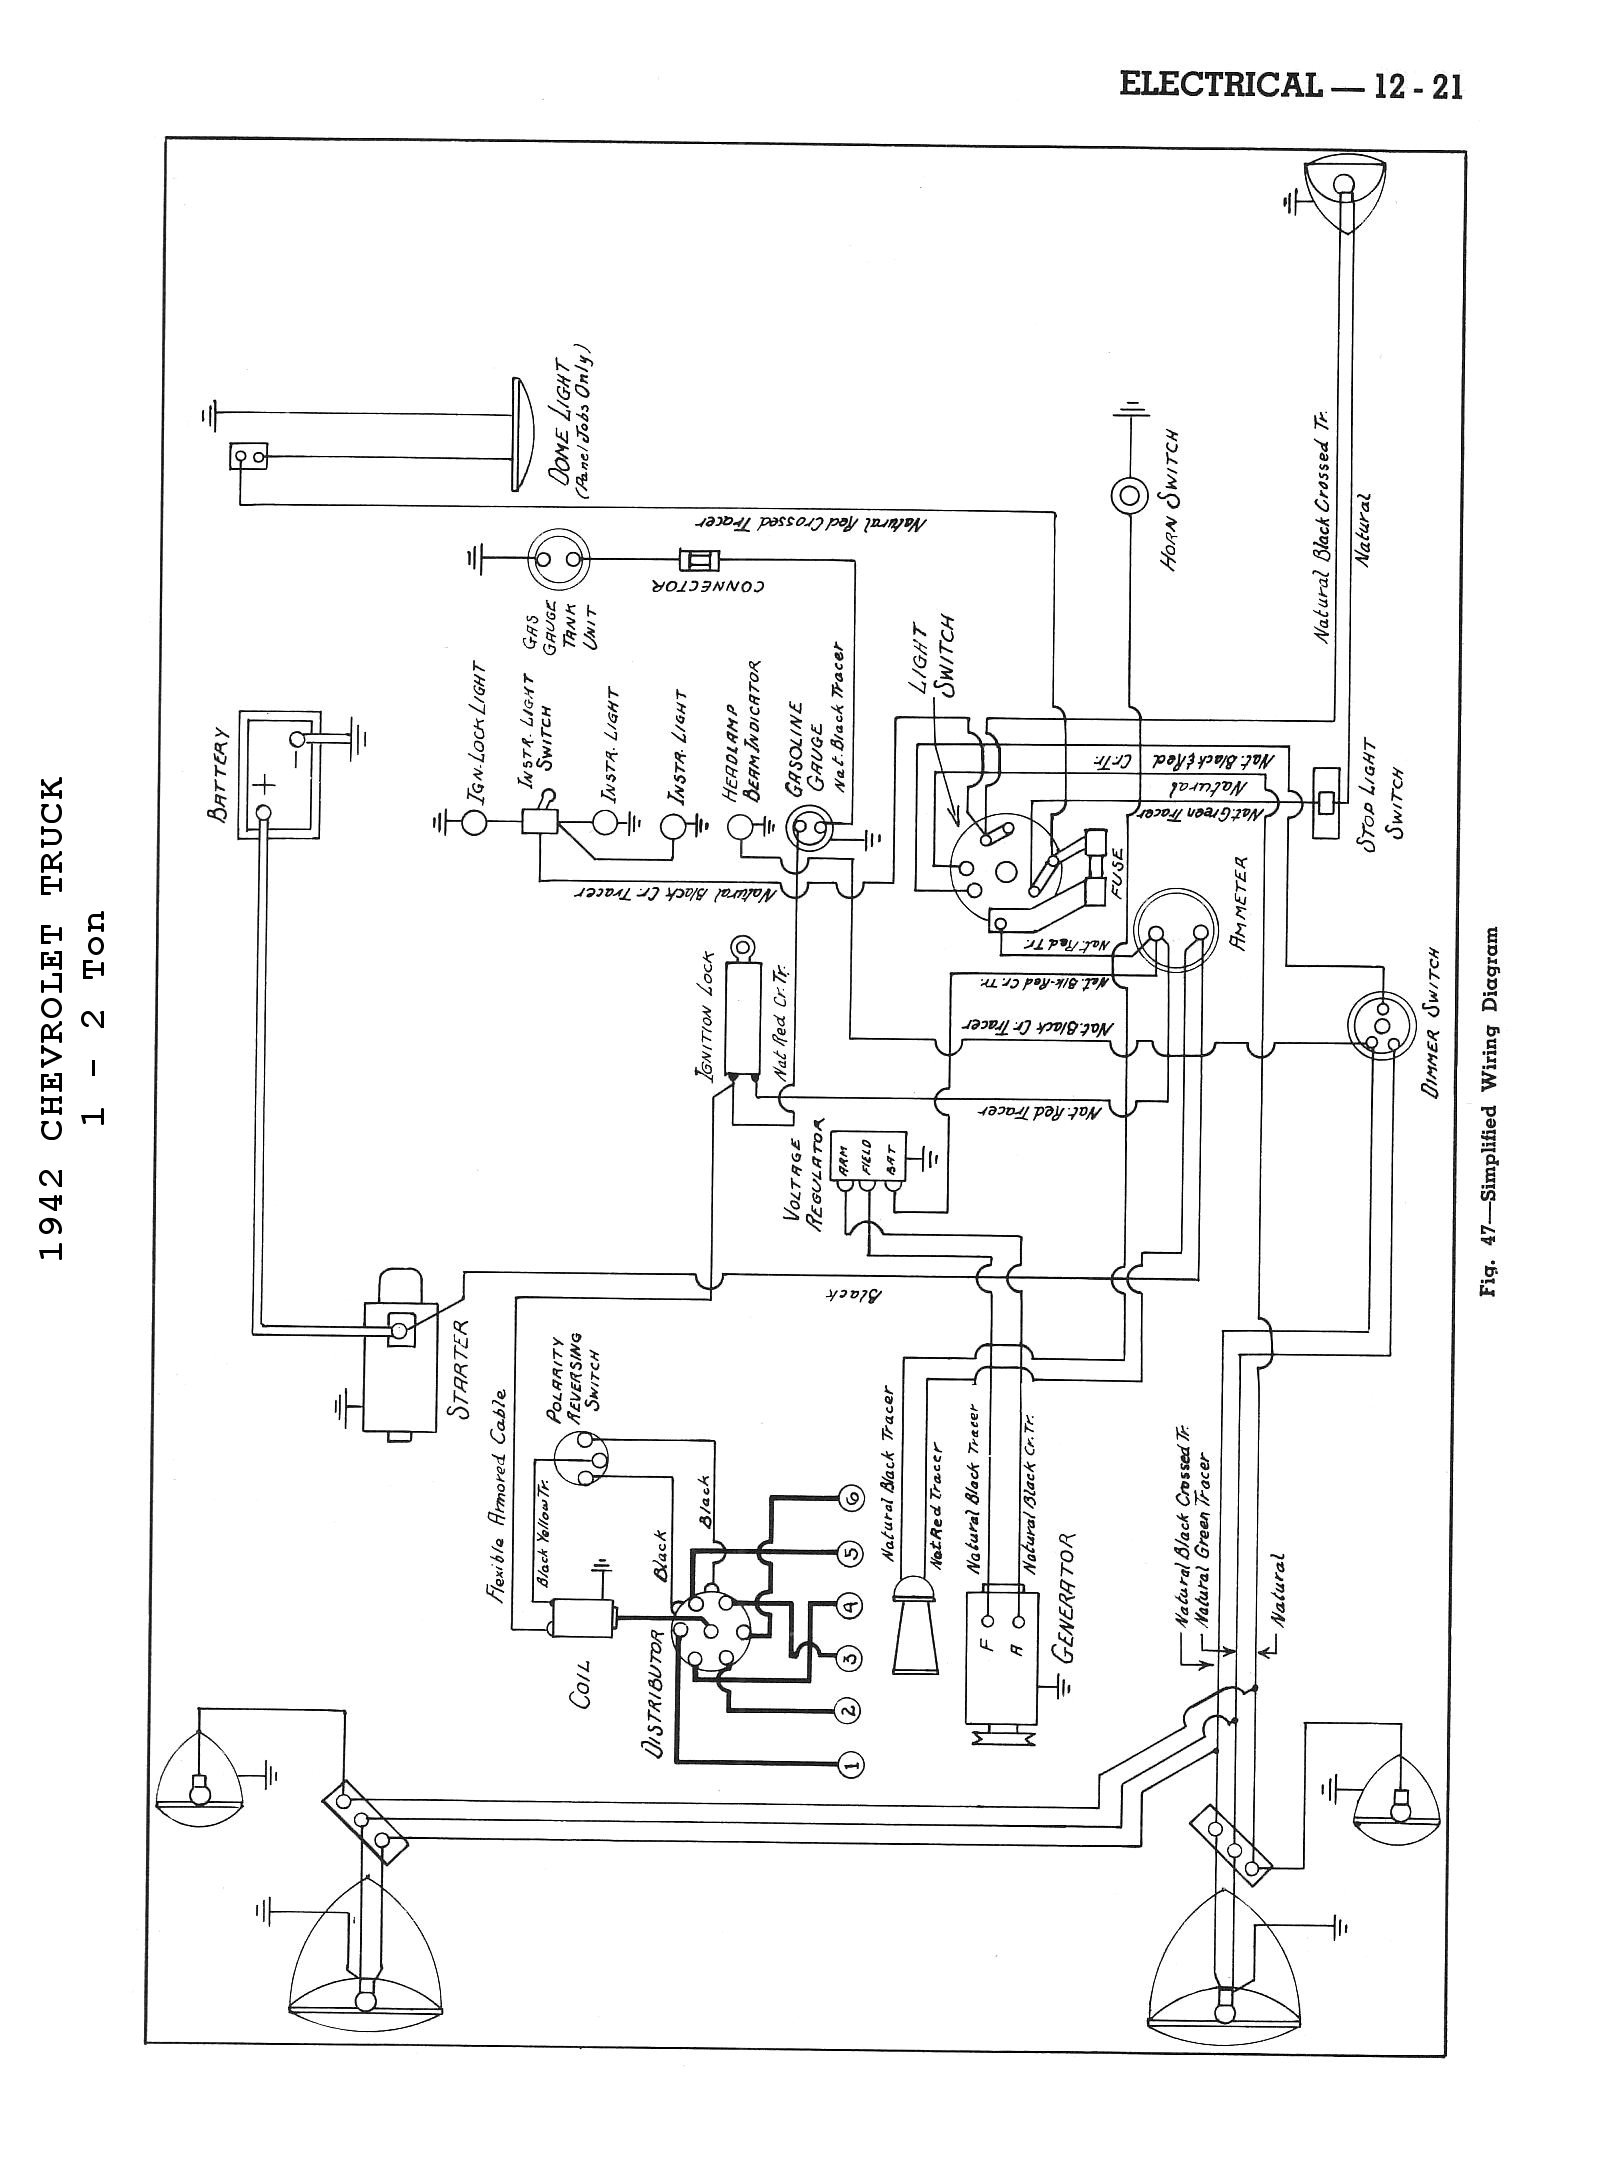 1942 oldsmobile wiring diagram wiring diagram u2022 rh msblog co 1941 Cadillac Deluxe Coupe Custom 1935 Cadillac Engine